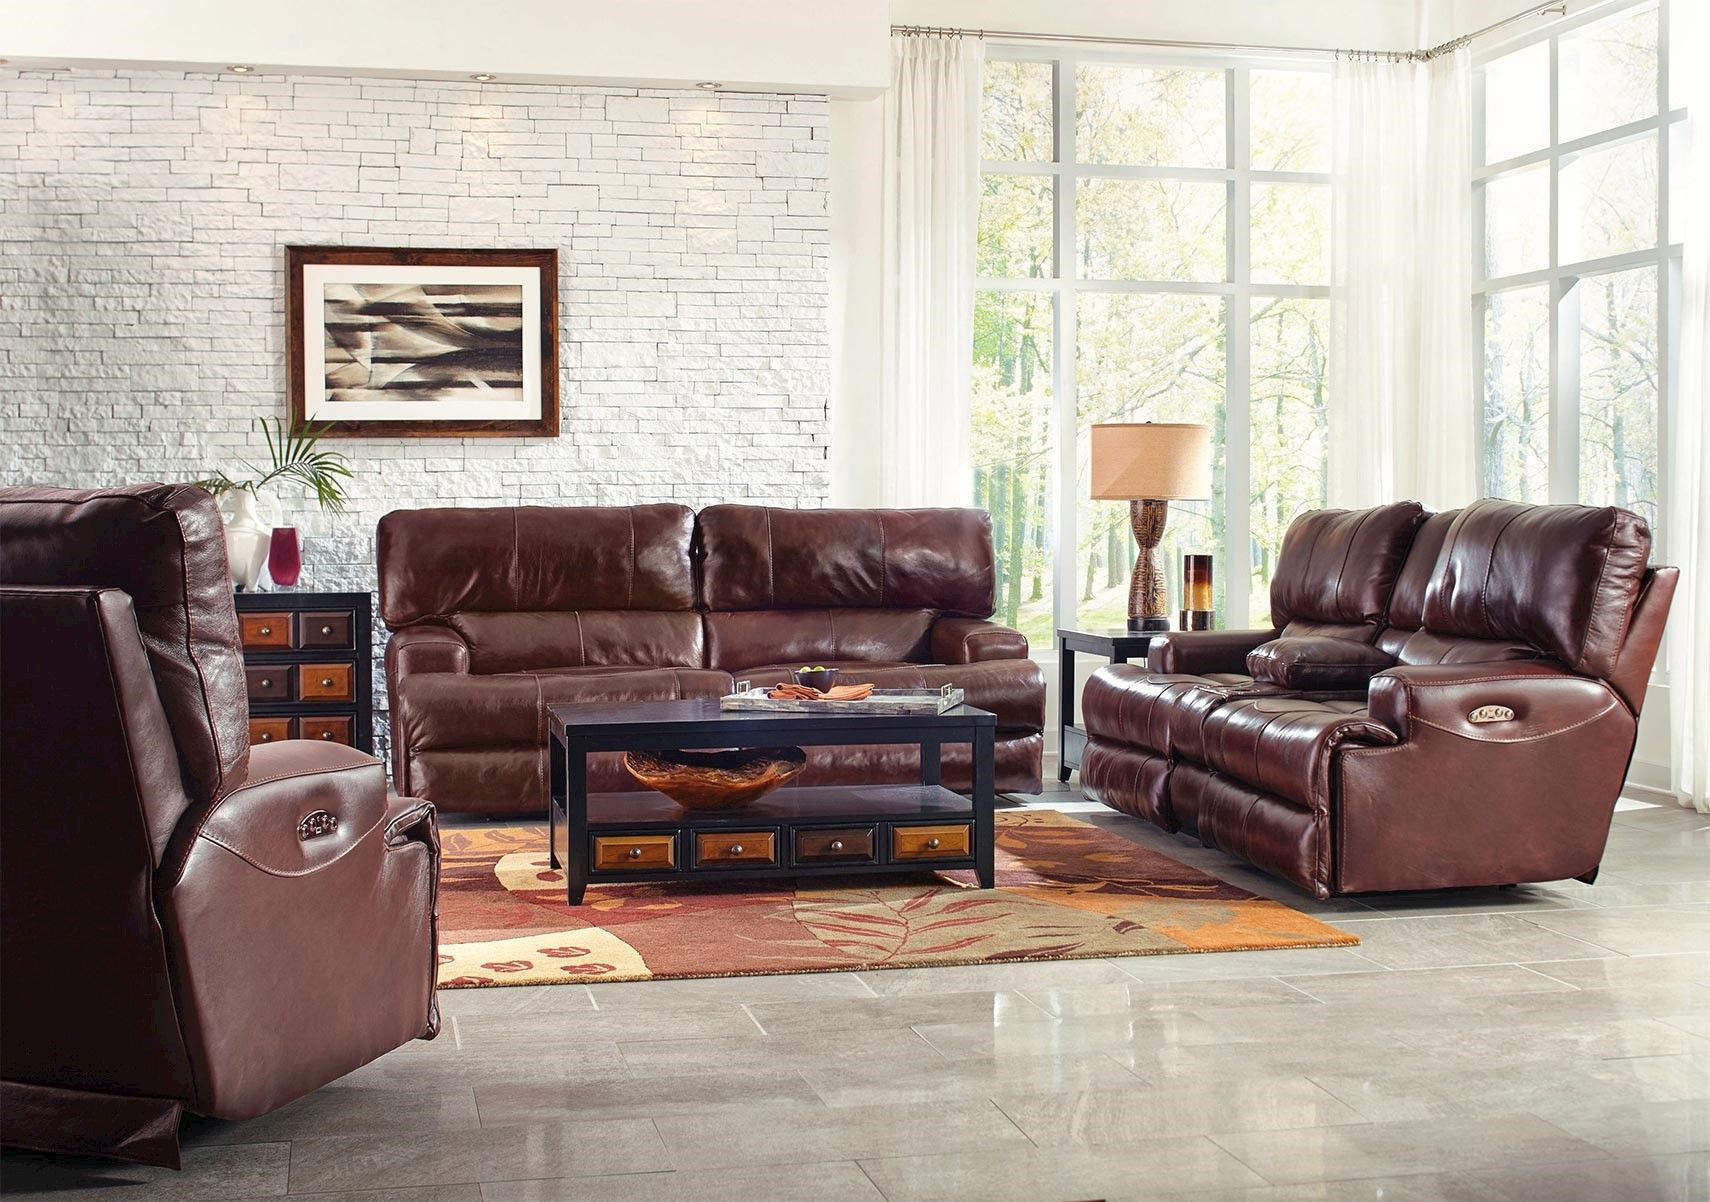 Lacks Wembley 2 Pc Dual Reclining Living Room Set With Power With Images Reclining Sectional Living Room Sets Living Room Collections